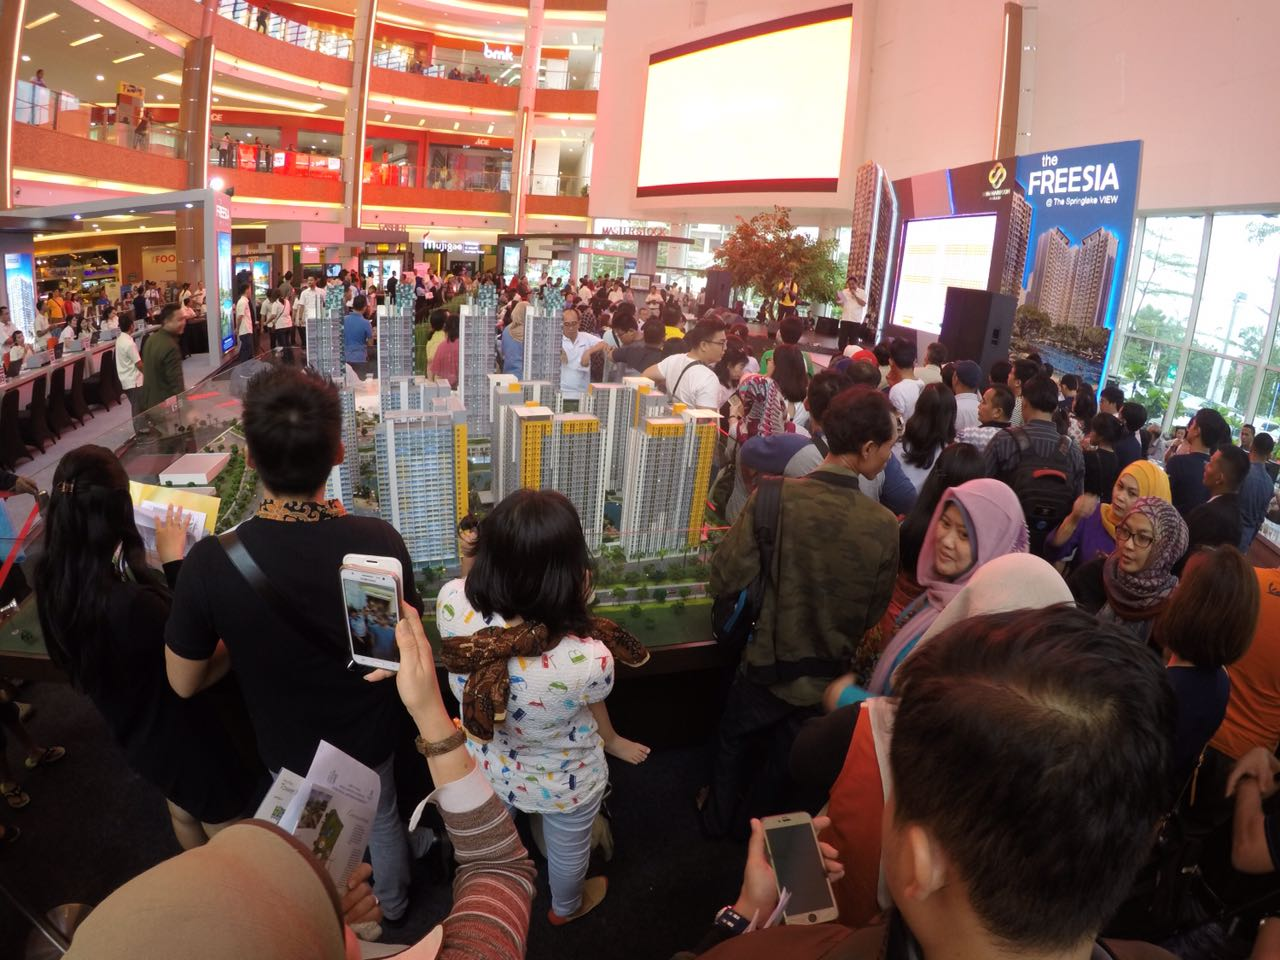 https://www.summareconbekasi.com/public/images/gallery/article/4575/IMG-20161023-WA0048.jpg